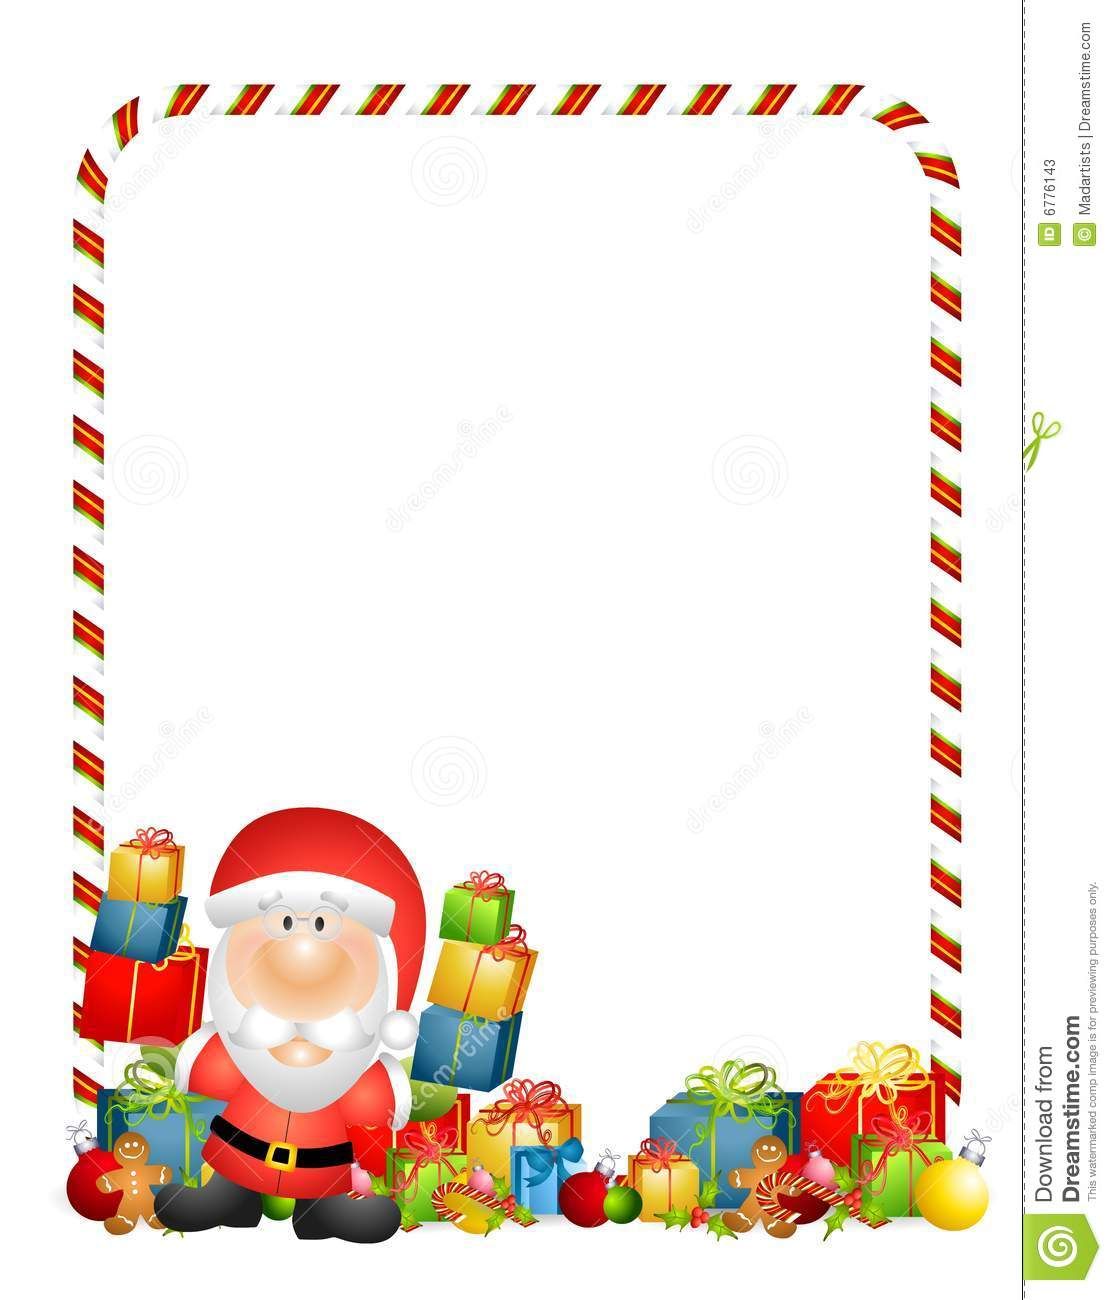 Santa Claus Gifts Border Stock Illustration Illustration Of Santa